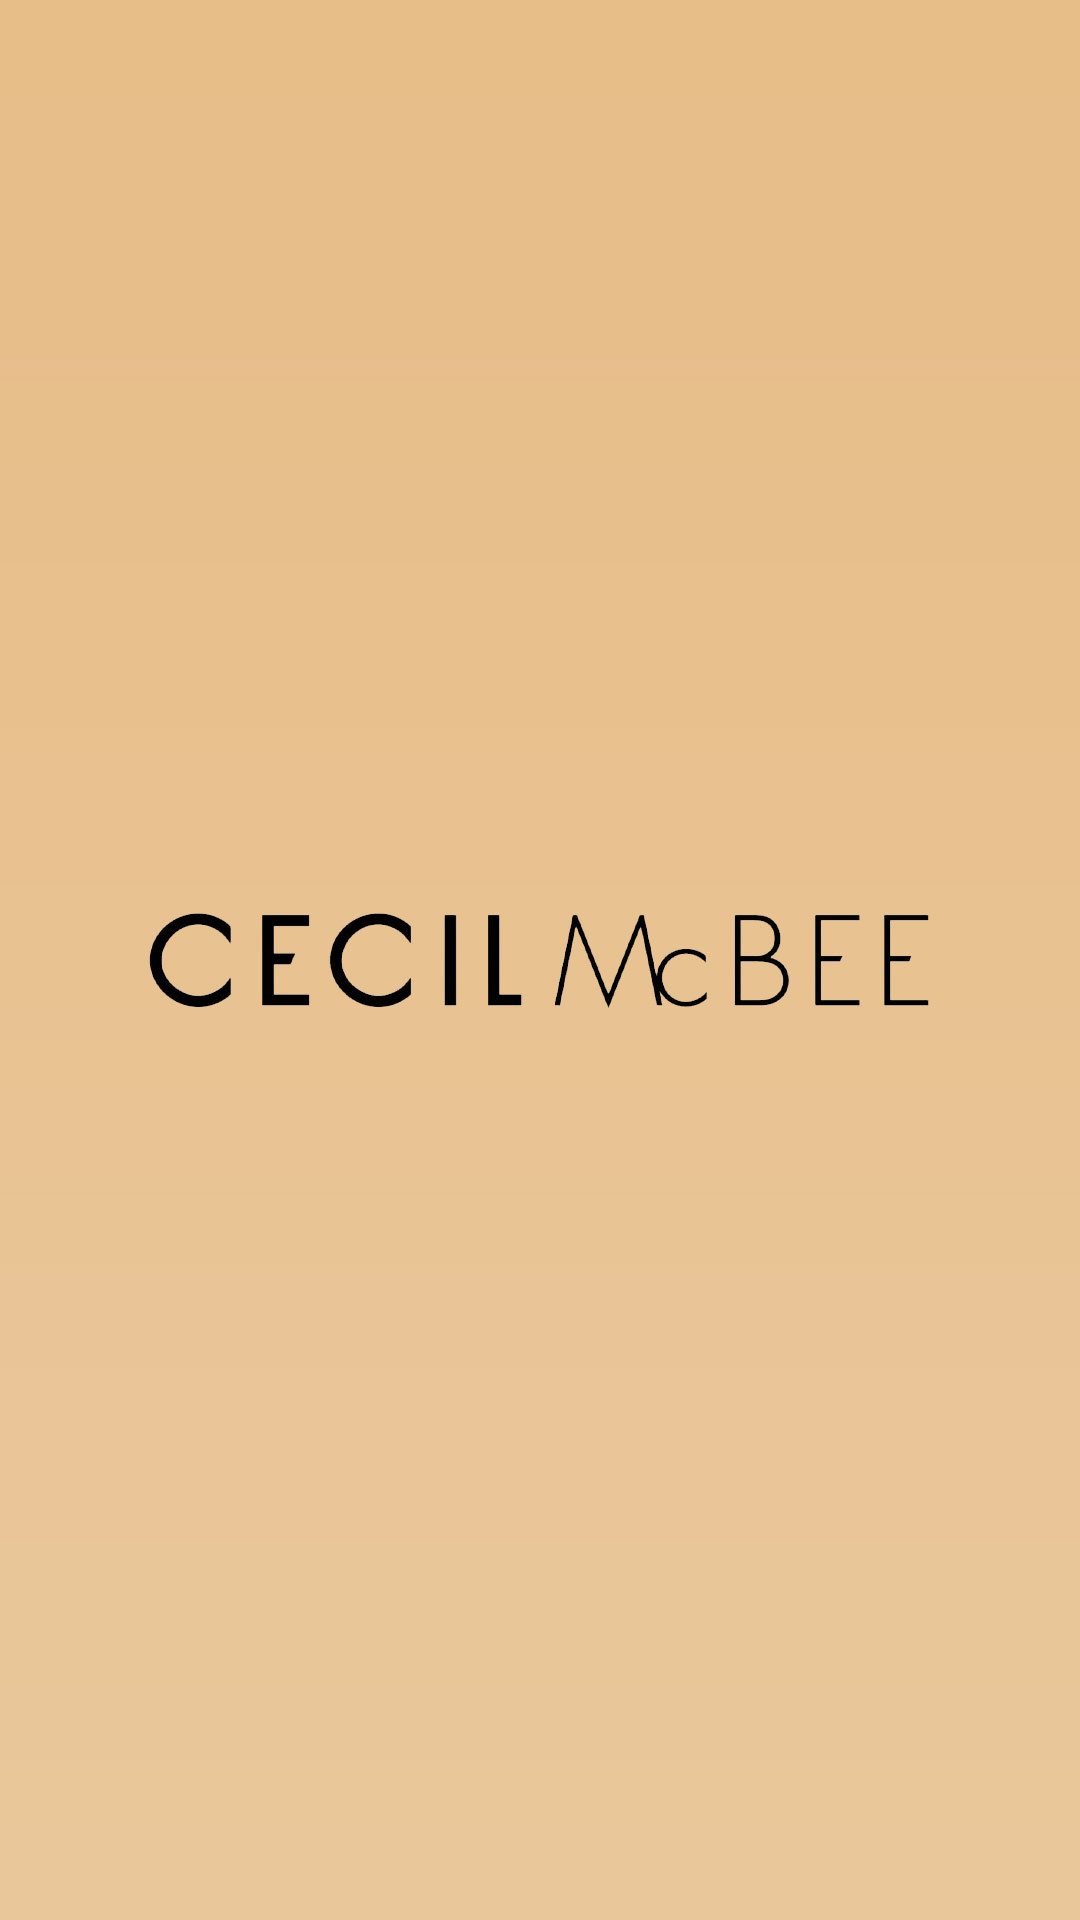 cecil00020 - セシルマクビー[CECIL McBEE]の高画質スマホ壁紙23枚 [iPhone&Androidに対応]